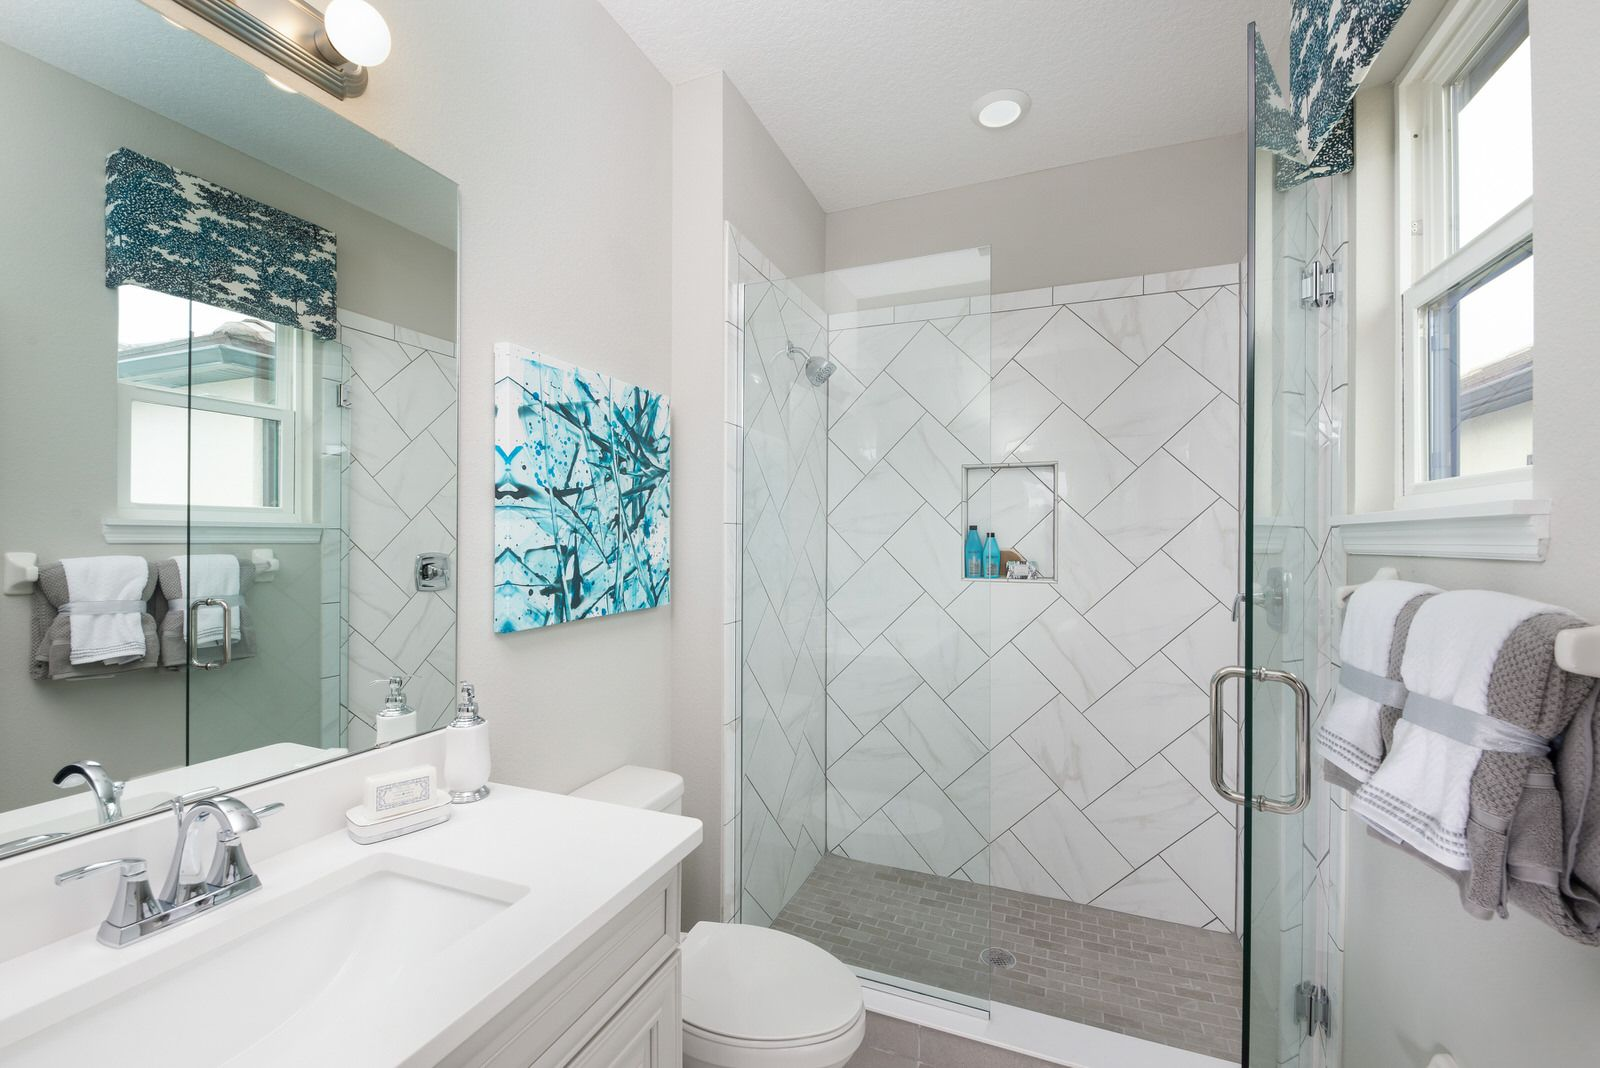 Bathroom featured in the Anastasia By Taylor Morrison in Orlando, FL